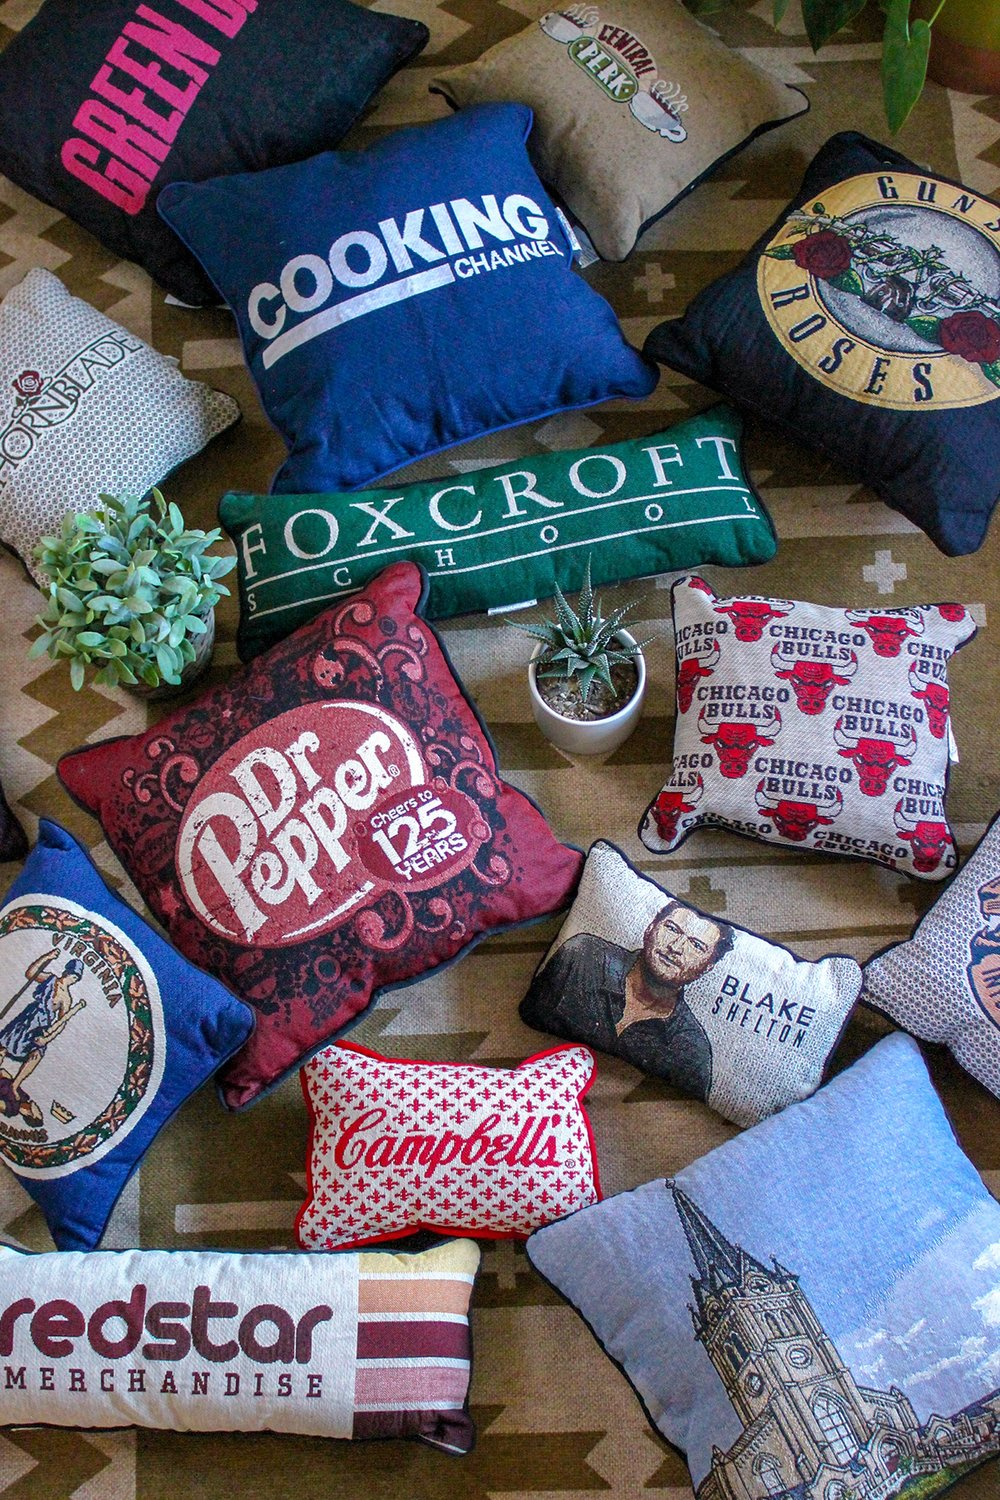 Sewn Items - Pillows & Totes made from durable Jacquard woven fabric accommodate up to full color designs. Customize fabric backing, straps and more for a truly unique product.